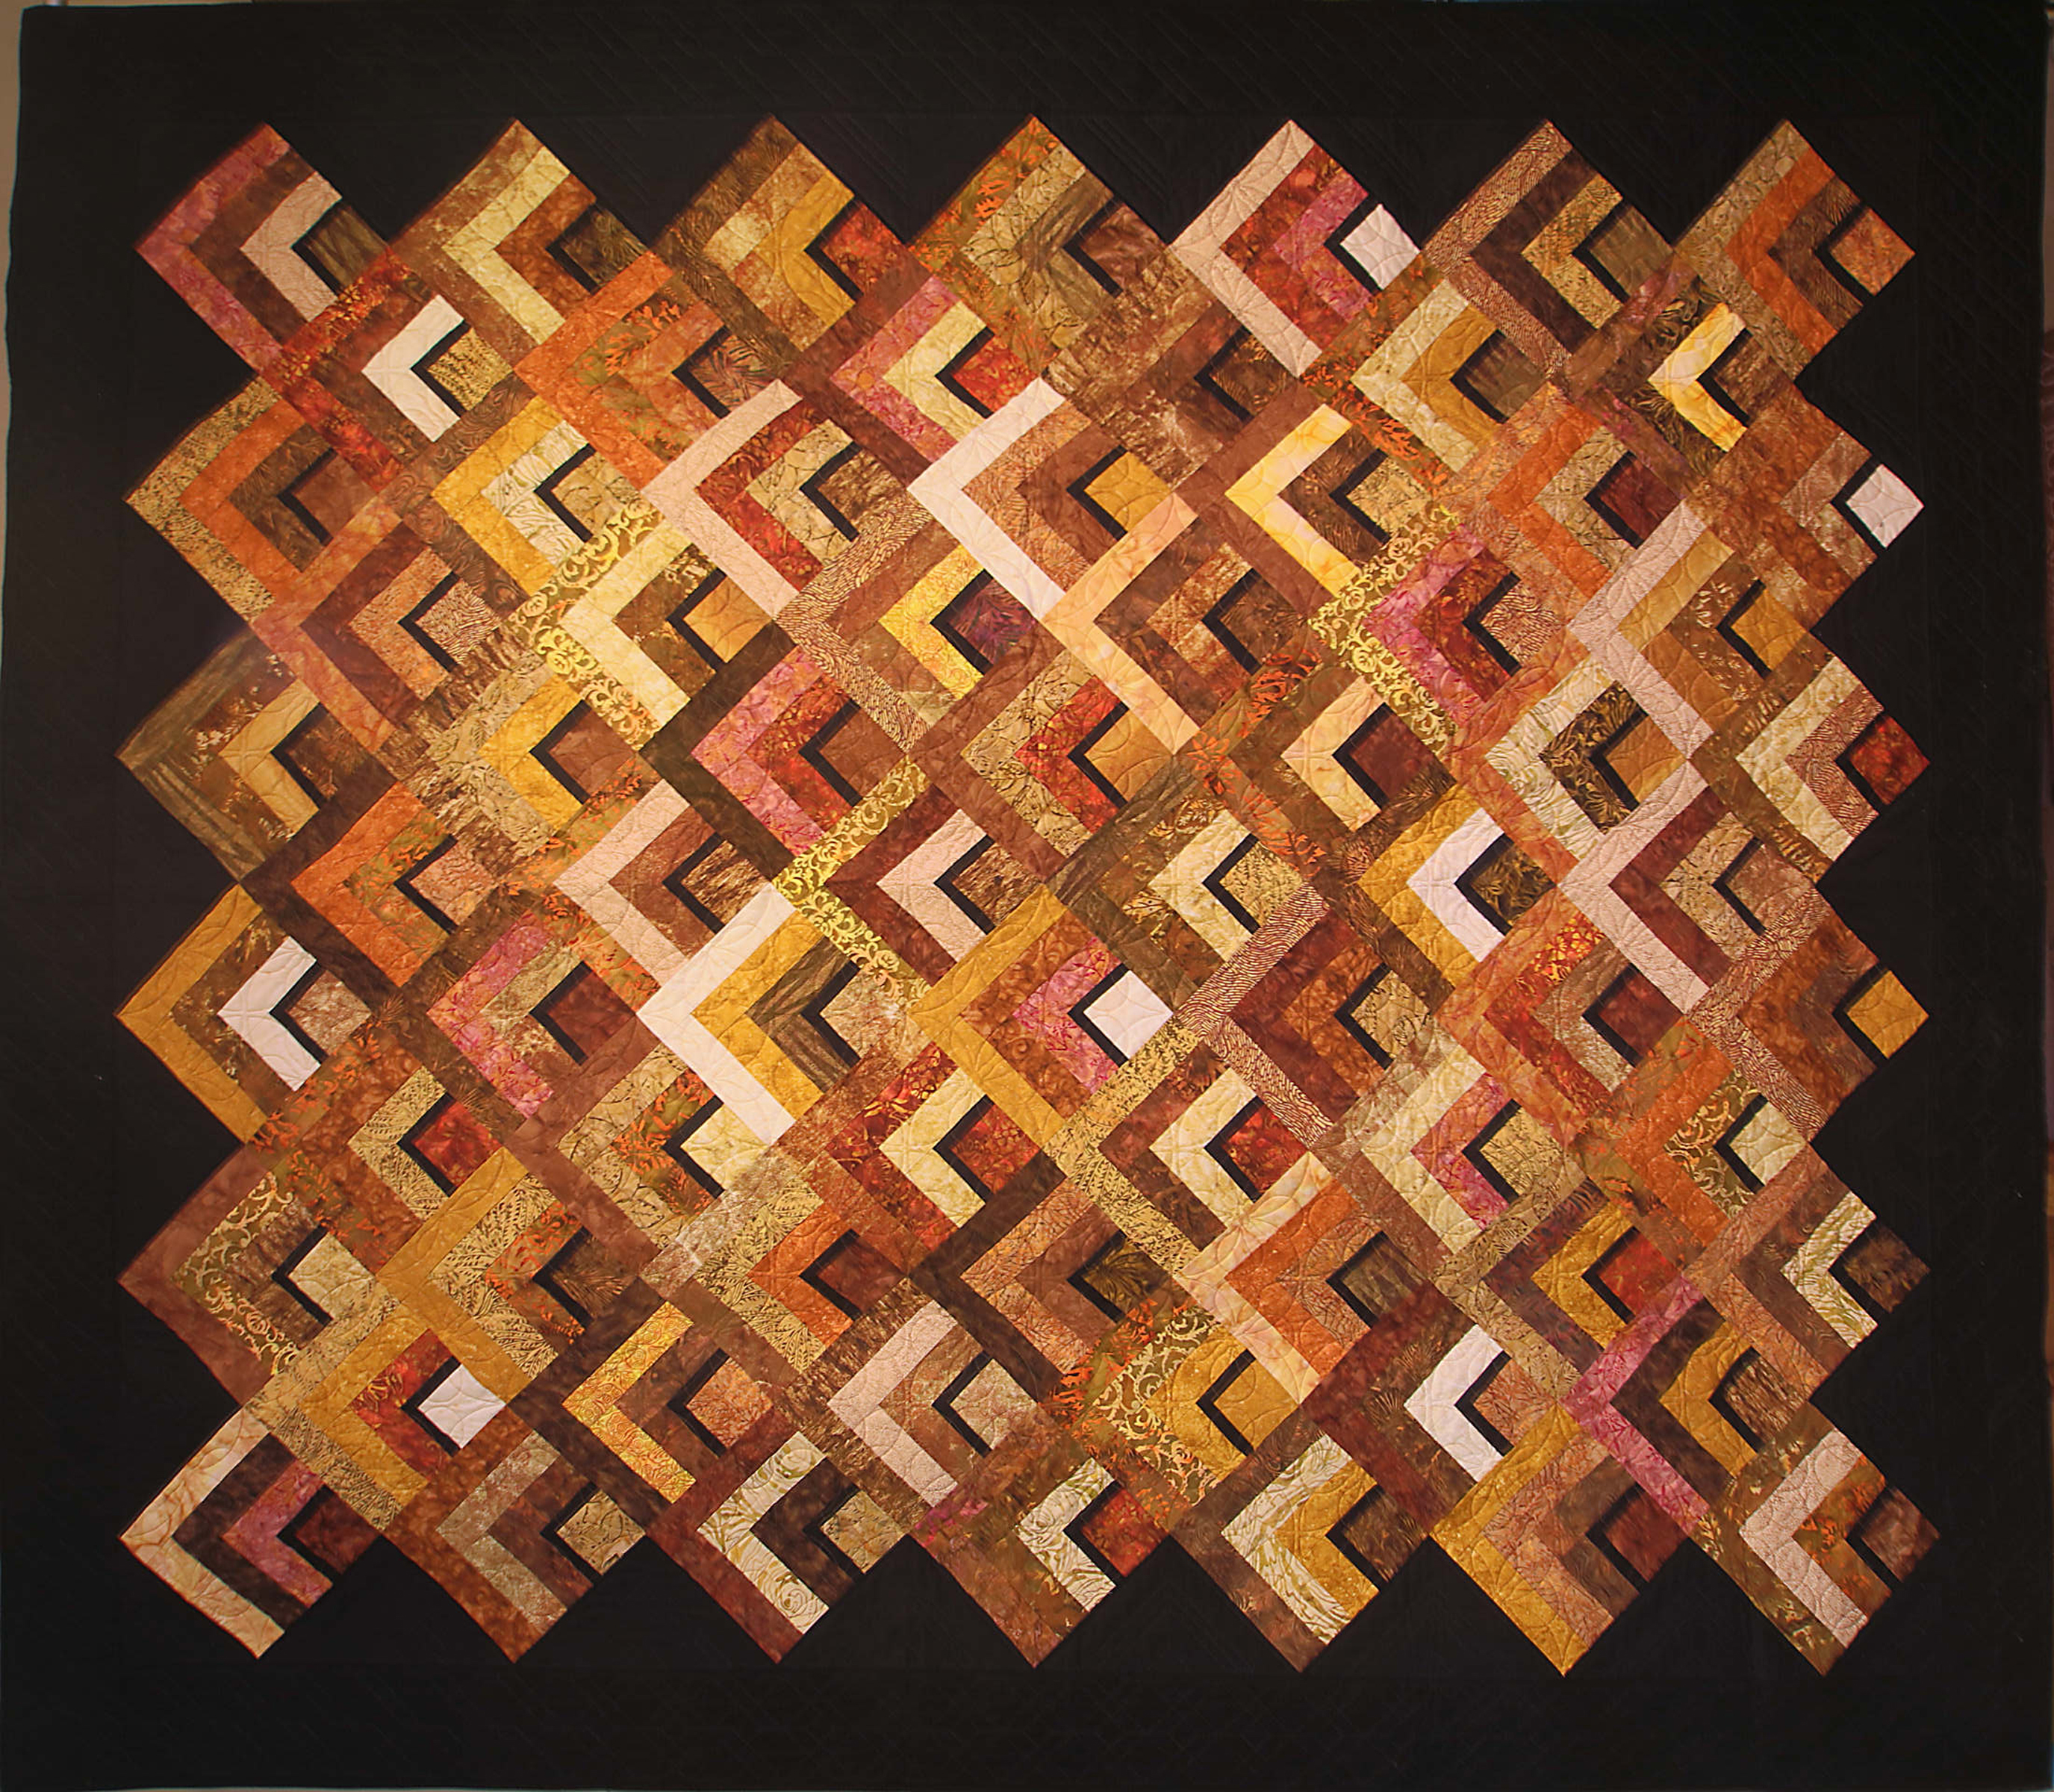 Quiltfest The Center Of It All For Quilts Wearable Textile Arts